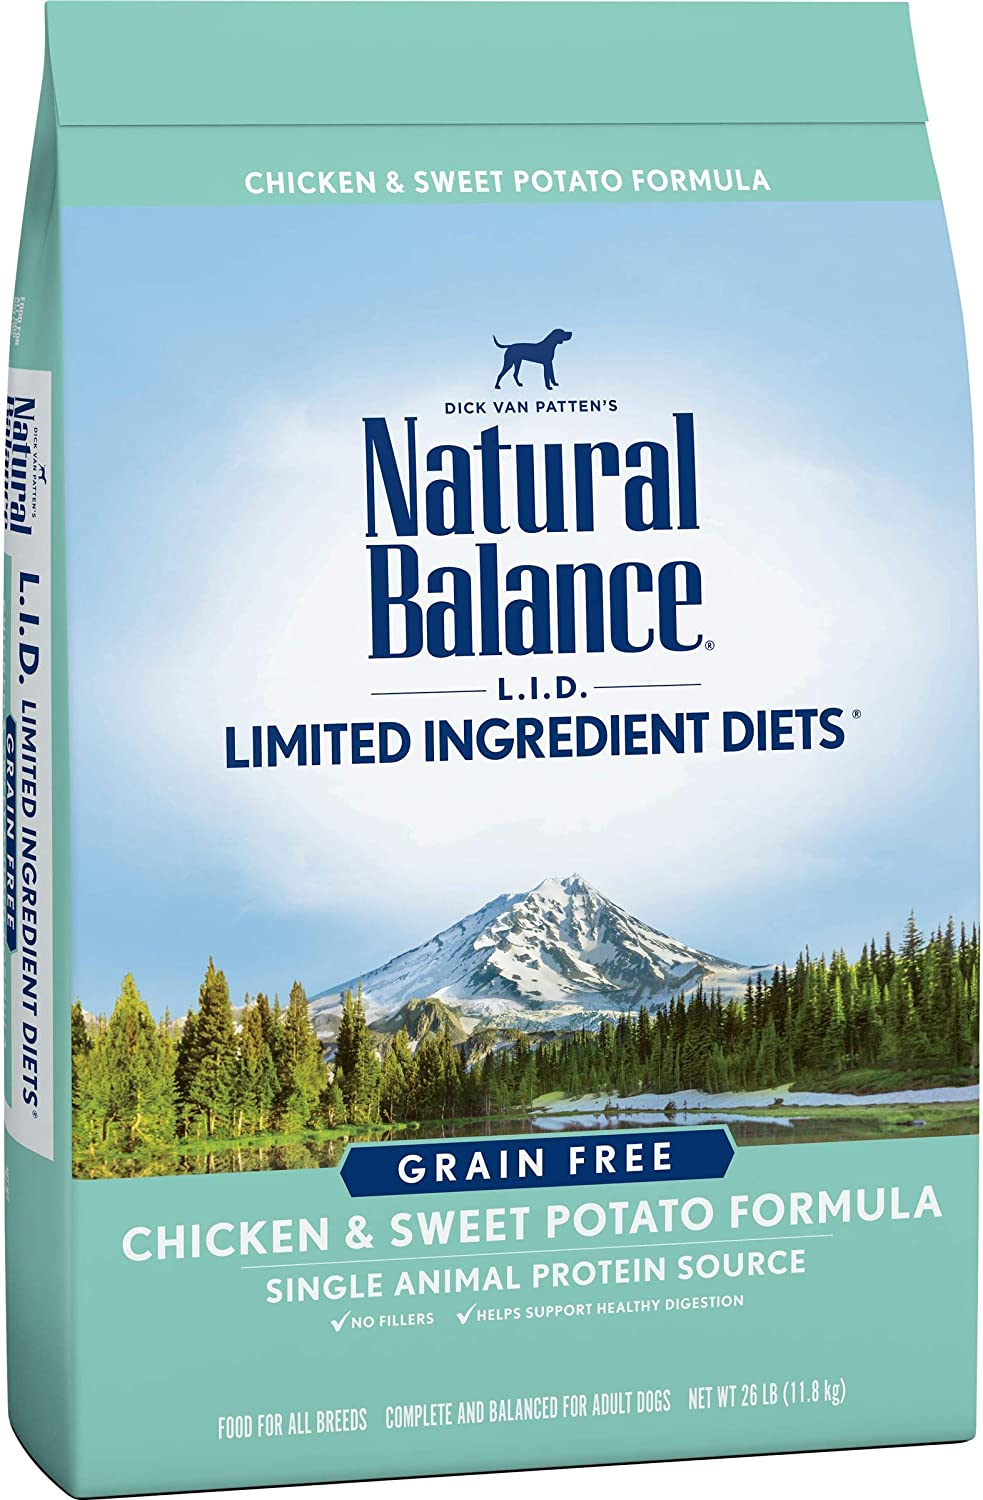 Natural Balance LID Limited Ingredient Diets Salmon & Sweet Potato Formula Grain-Free Dry Dog Food